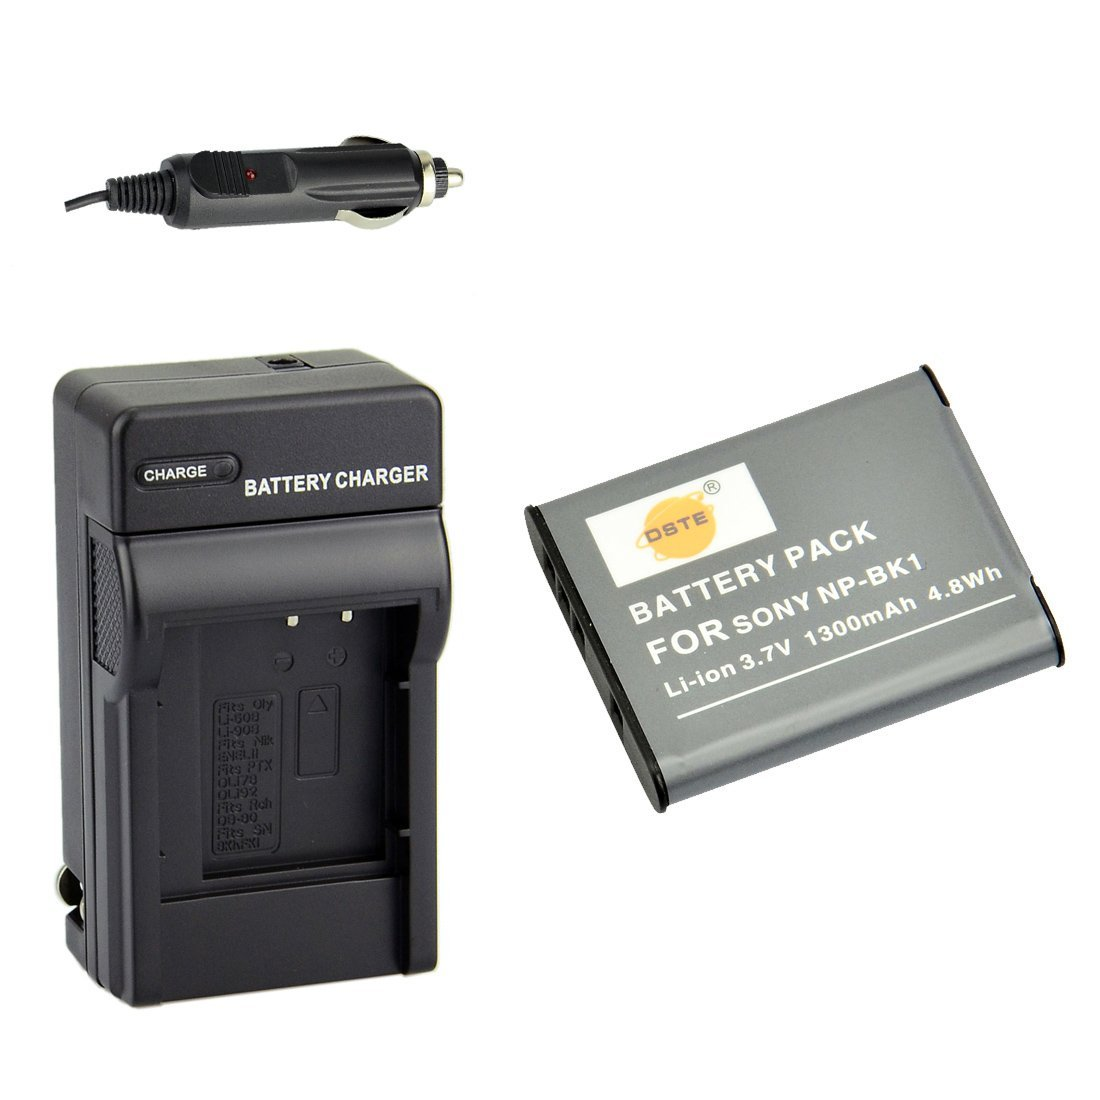 DSTE NP-BK1 Battery + DC16 Travel and Car Charger Adapter for Sony Bloggie MHS-CM5 MHS-PM5 Webbie MHS-PM1 DSC-S750 S780 S850 950 980 W180 W190 W370 Camera